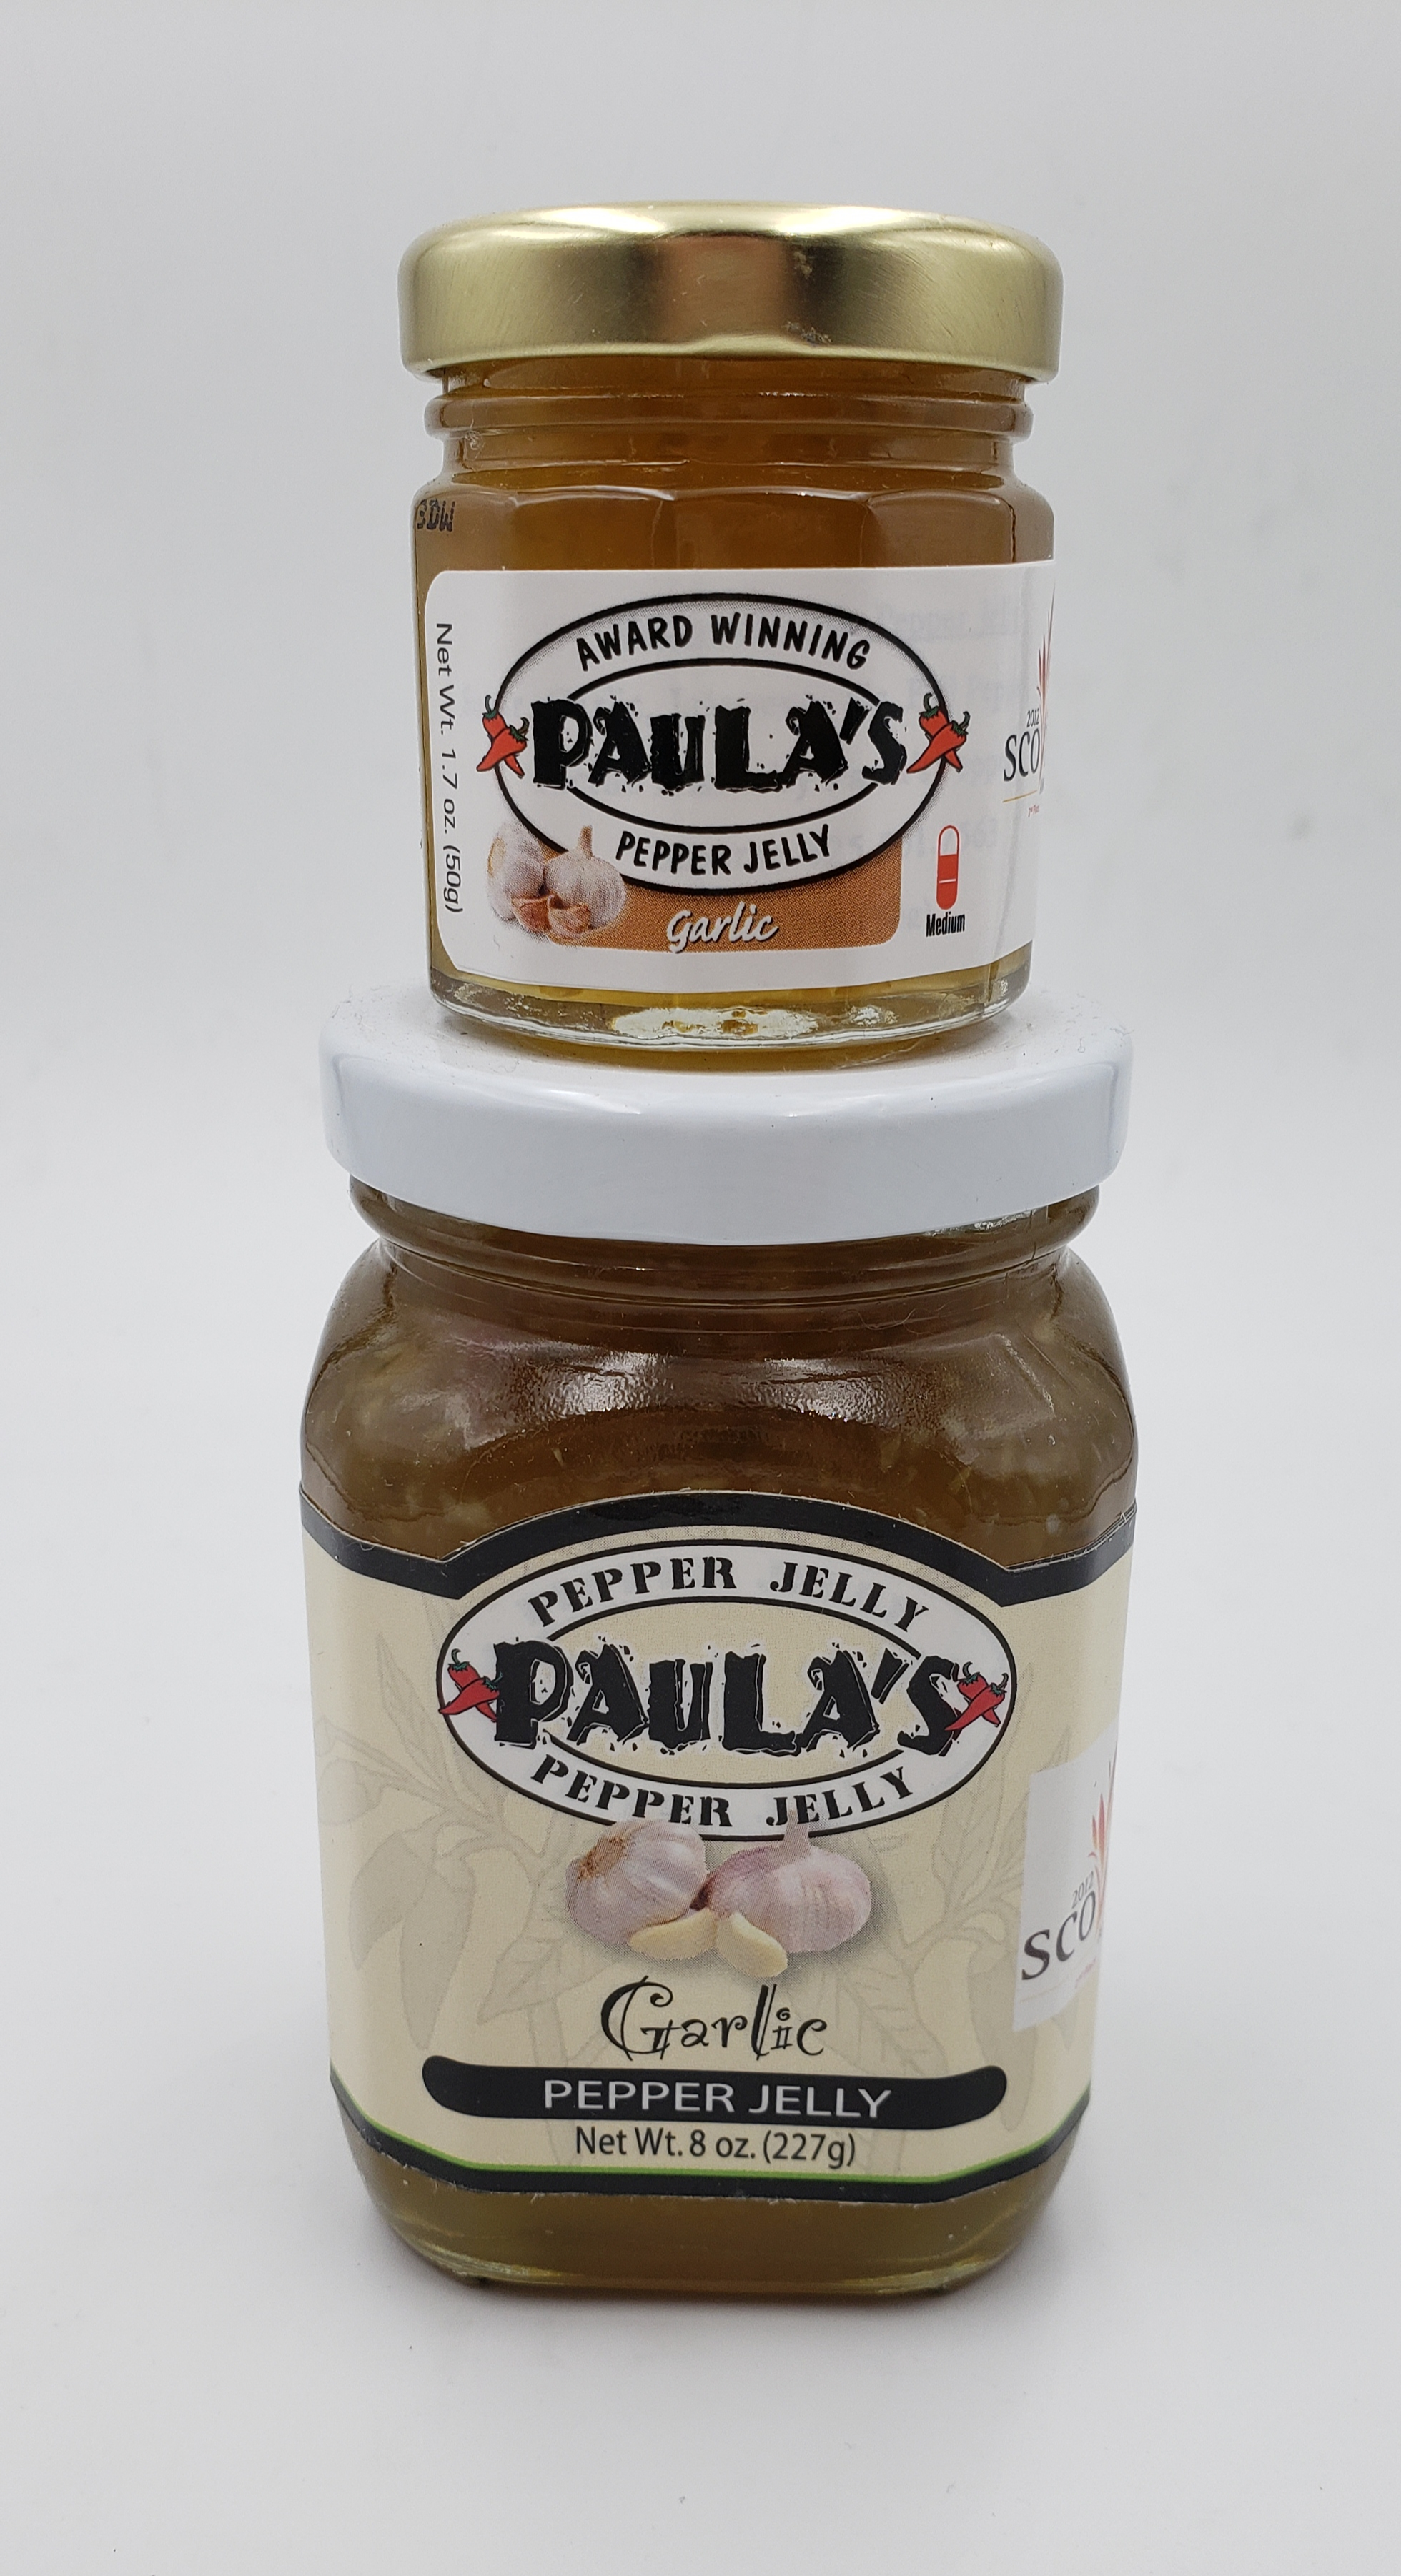 1.7 oz. Paula's Pepper Jelly jar filled with garlic pepper jelly on top of an 8 oz. jar of organic jelly label side out.